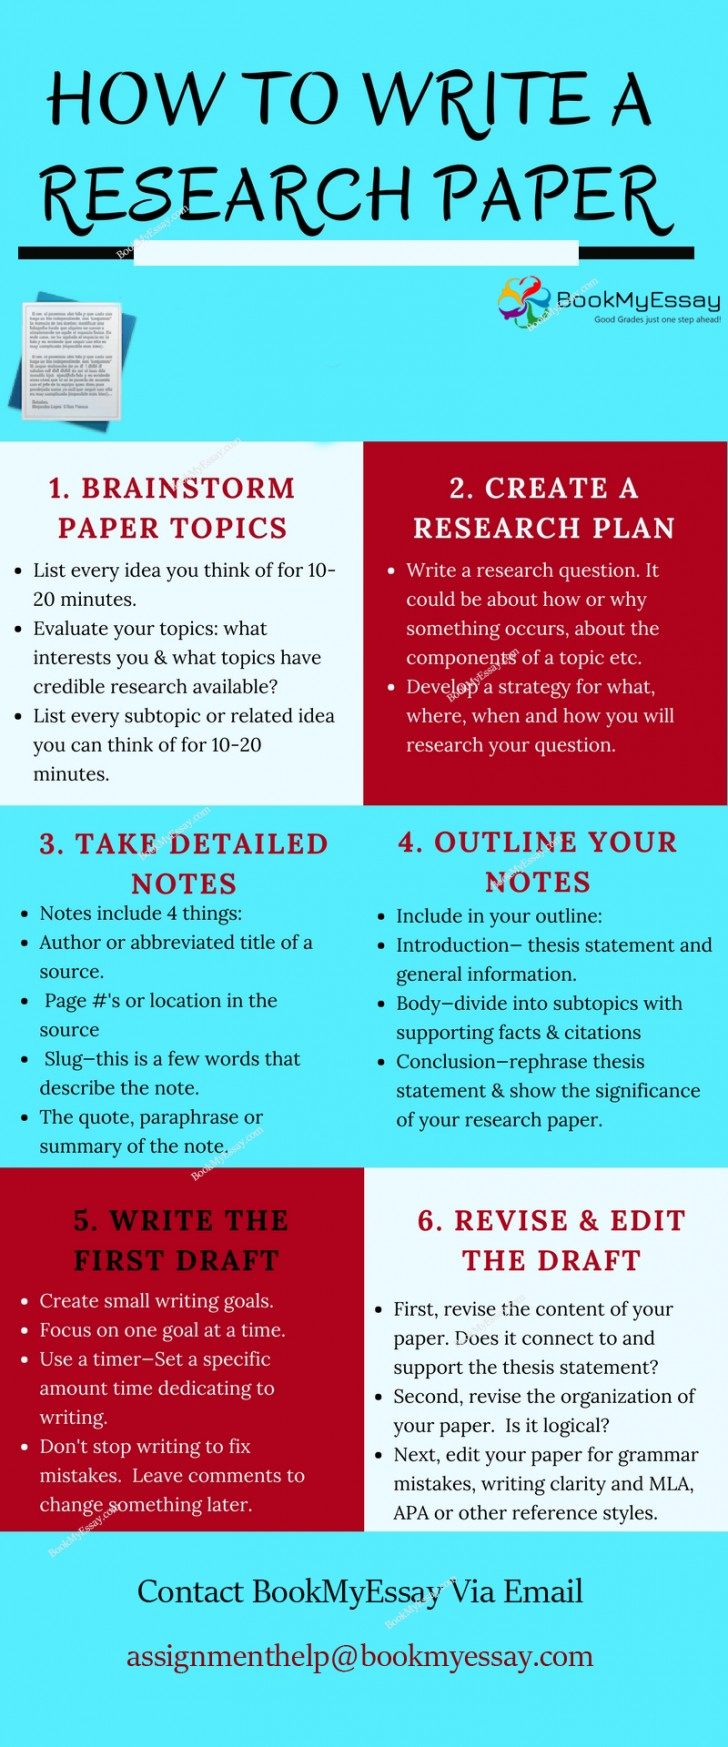 003 Research Paper Writing Service Dreaded Services In India Best Academic Online 728